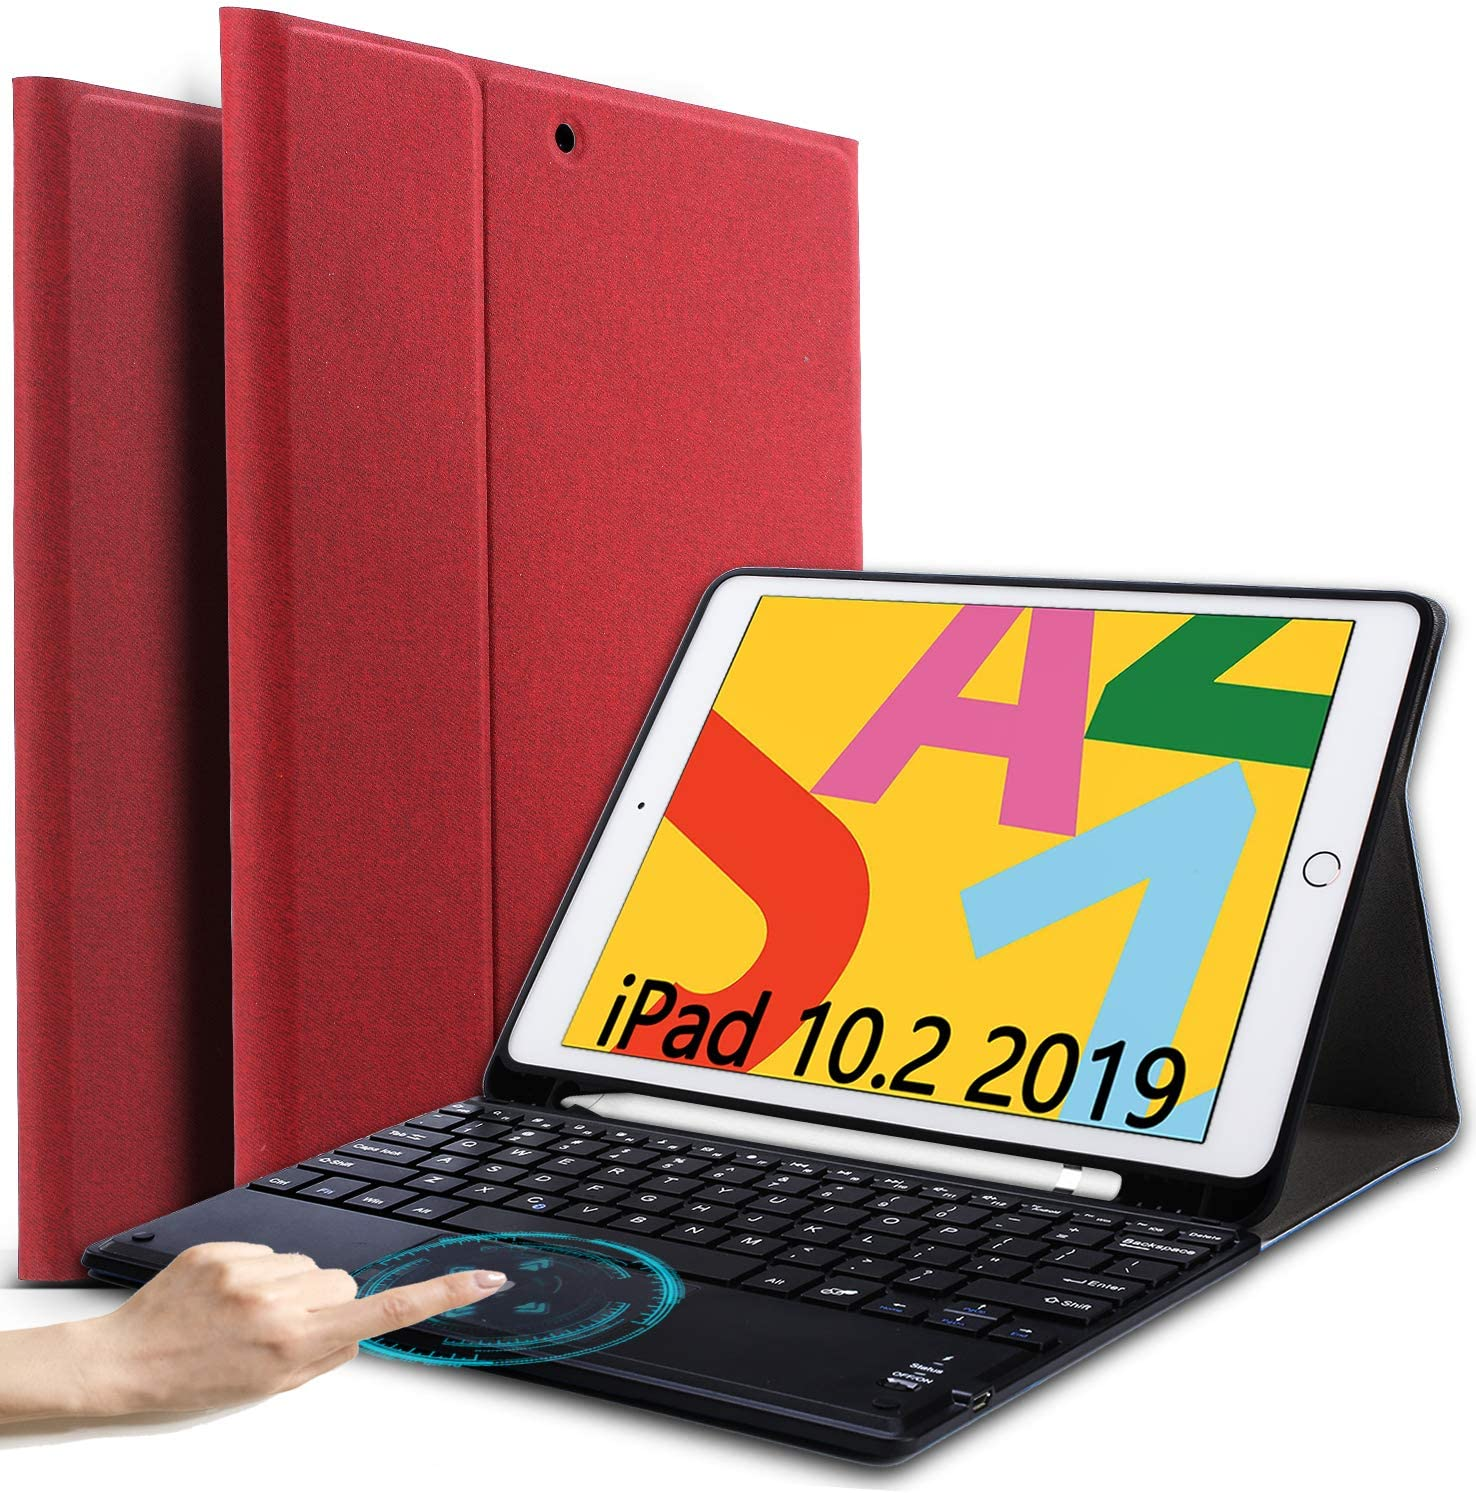 The best trackpad keyboard cases for iPad in 2020